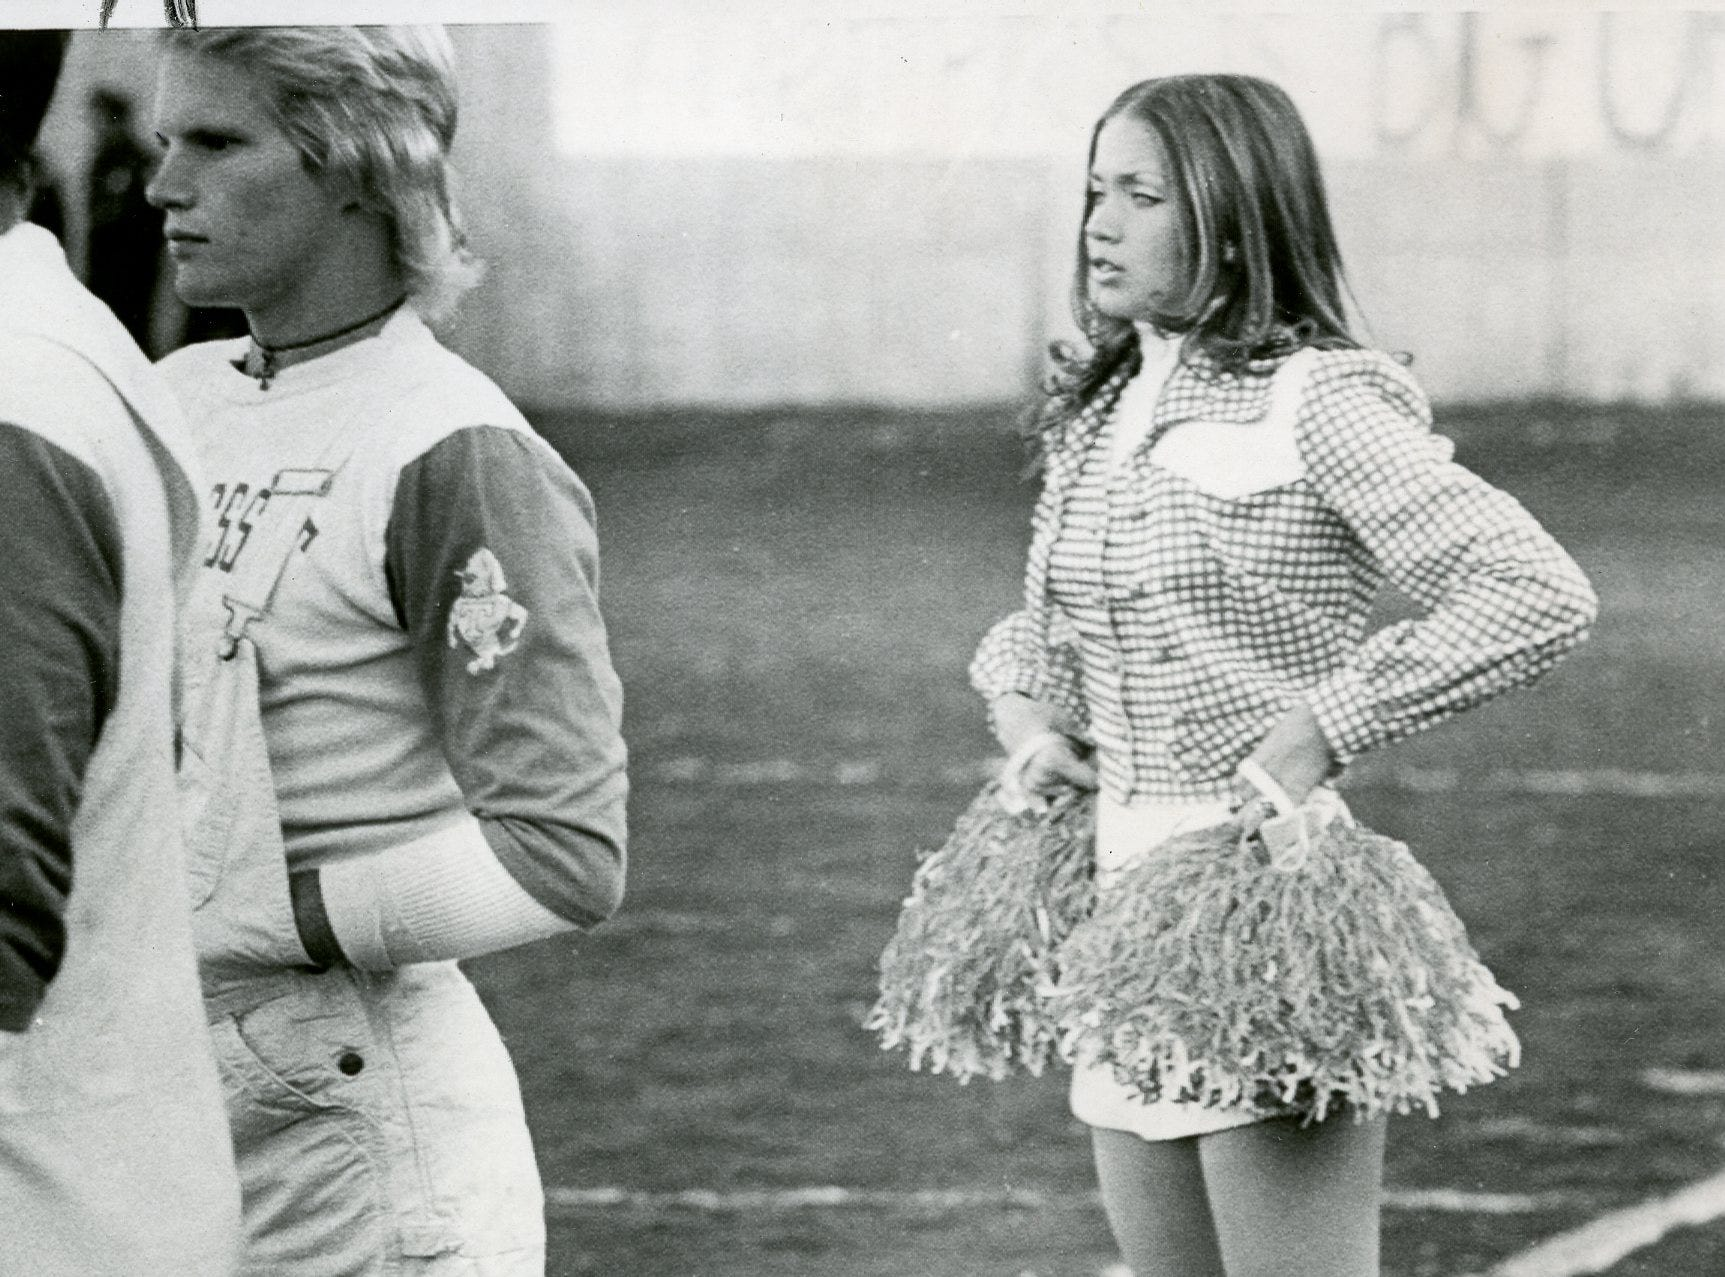 UT cheerleader Julie Brown and Smokey at Ole Miss. November, 1975.